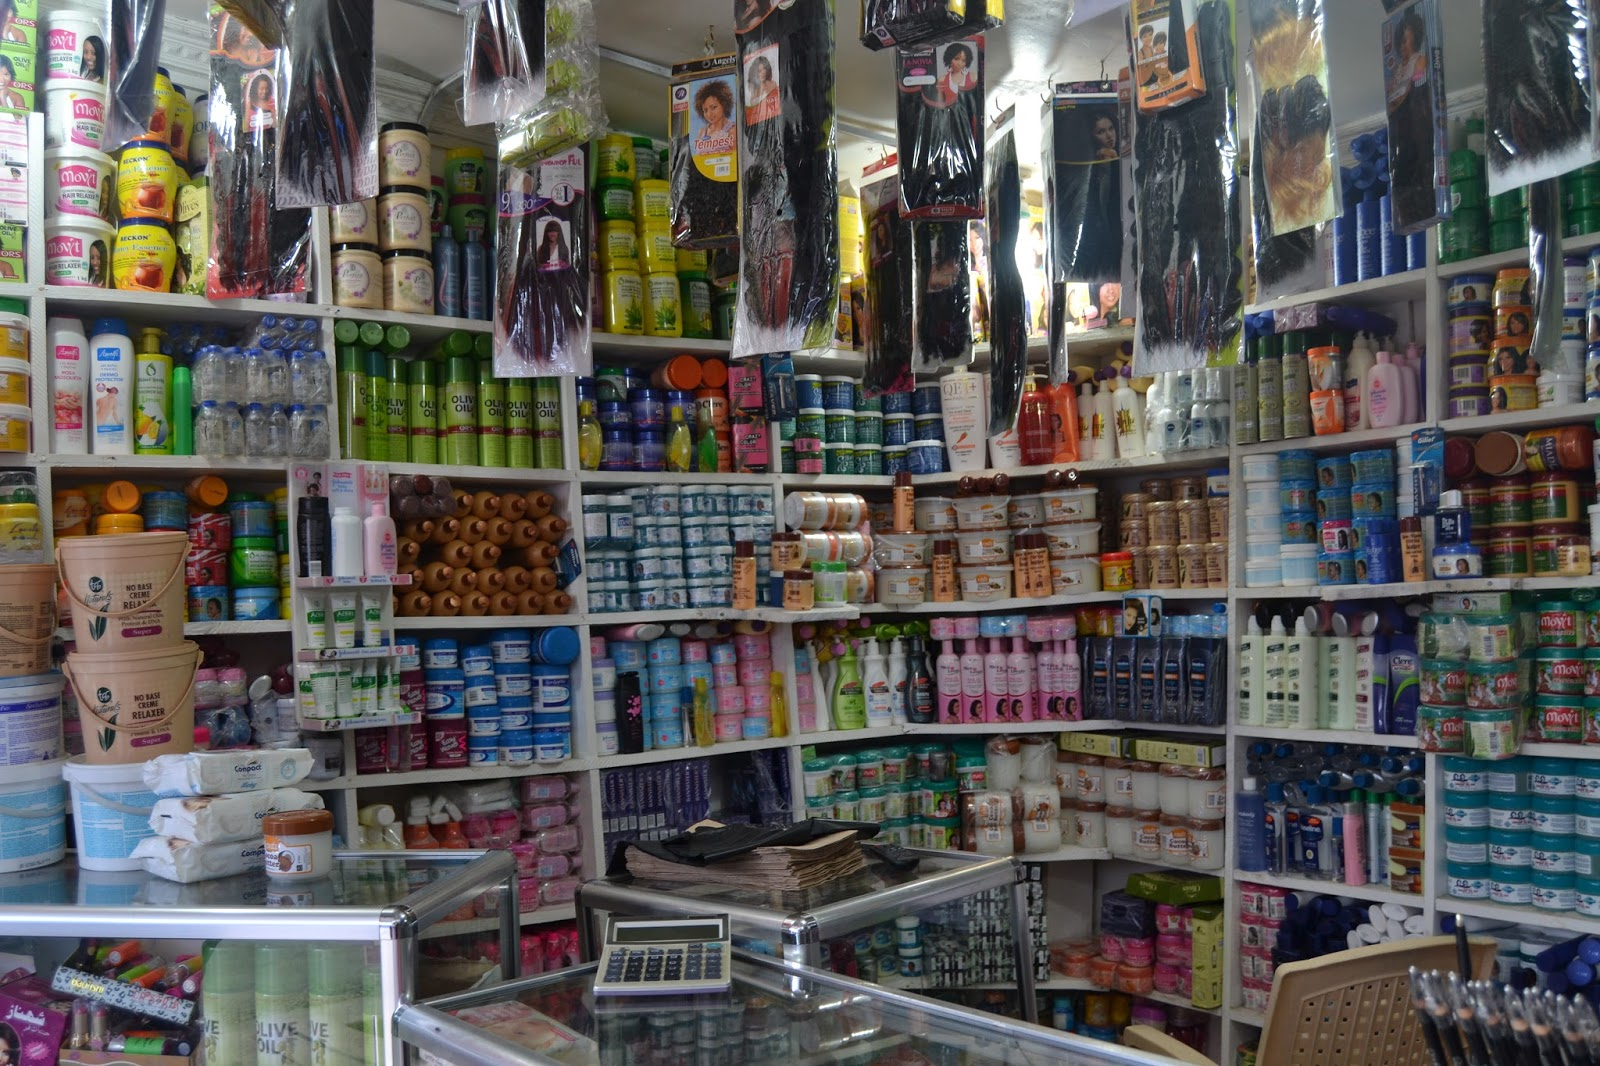 Food, cosmetics premises register vital for health